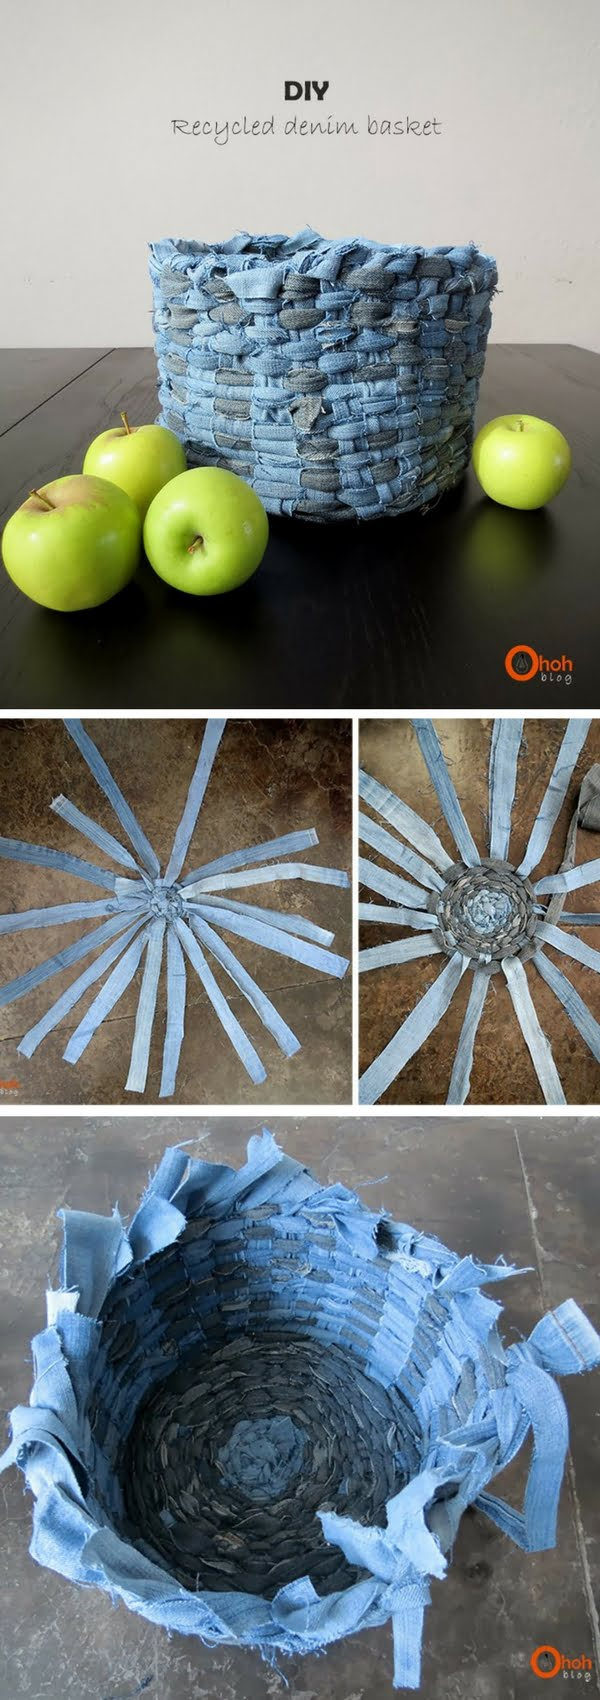 Check out how to make a DIY decorative basket from old jeans